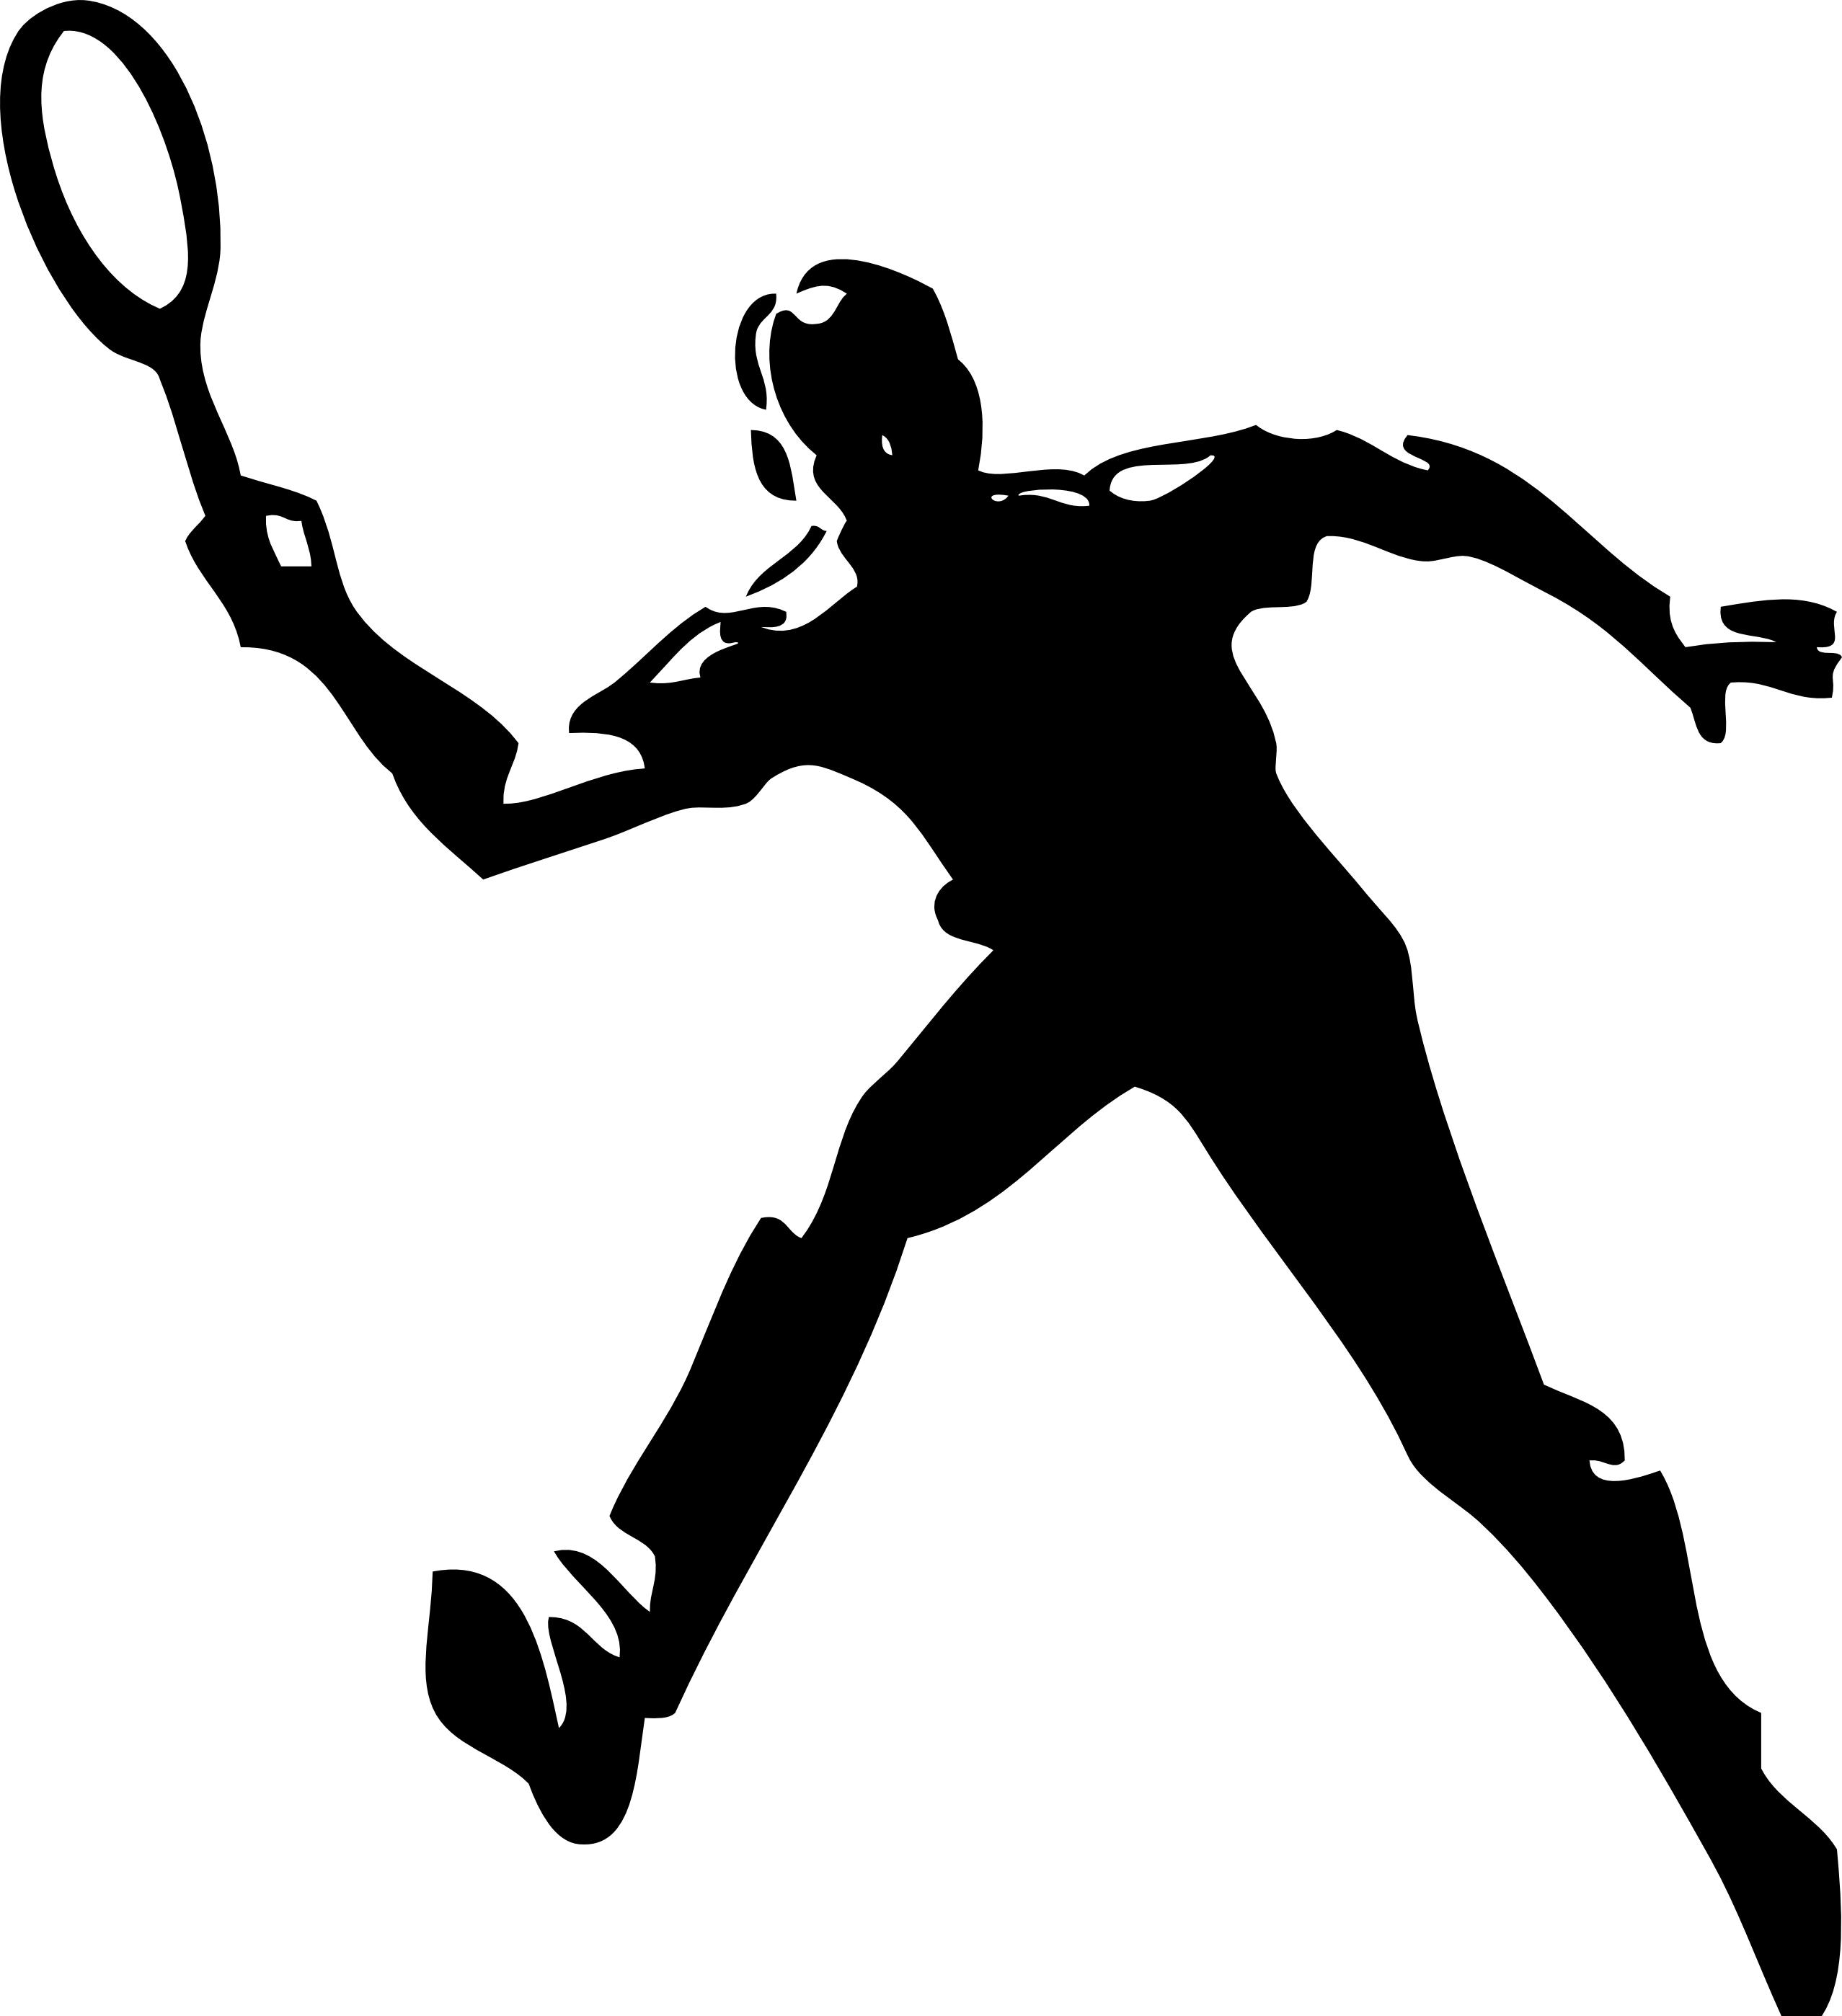 Men Clipart Tennis Men Tennis Transparent Free For Download On Webstockreview 2021